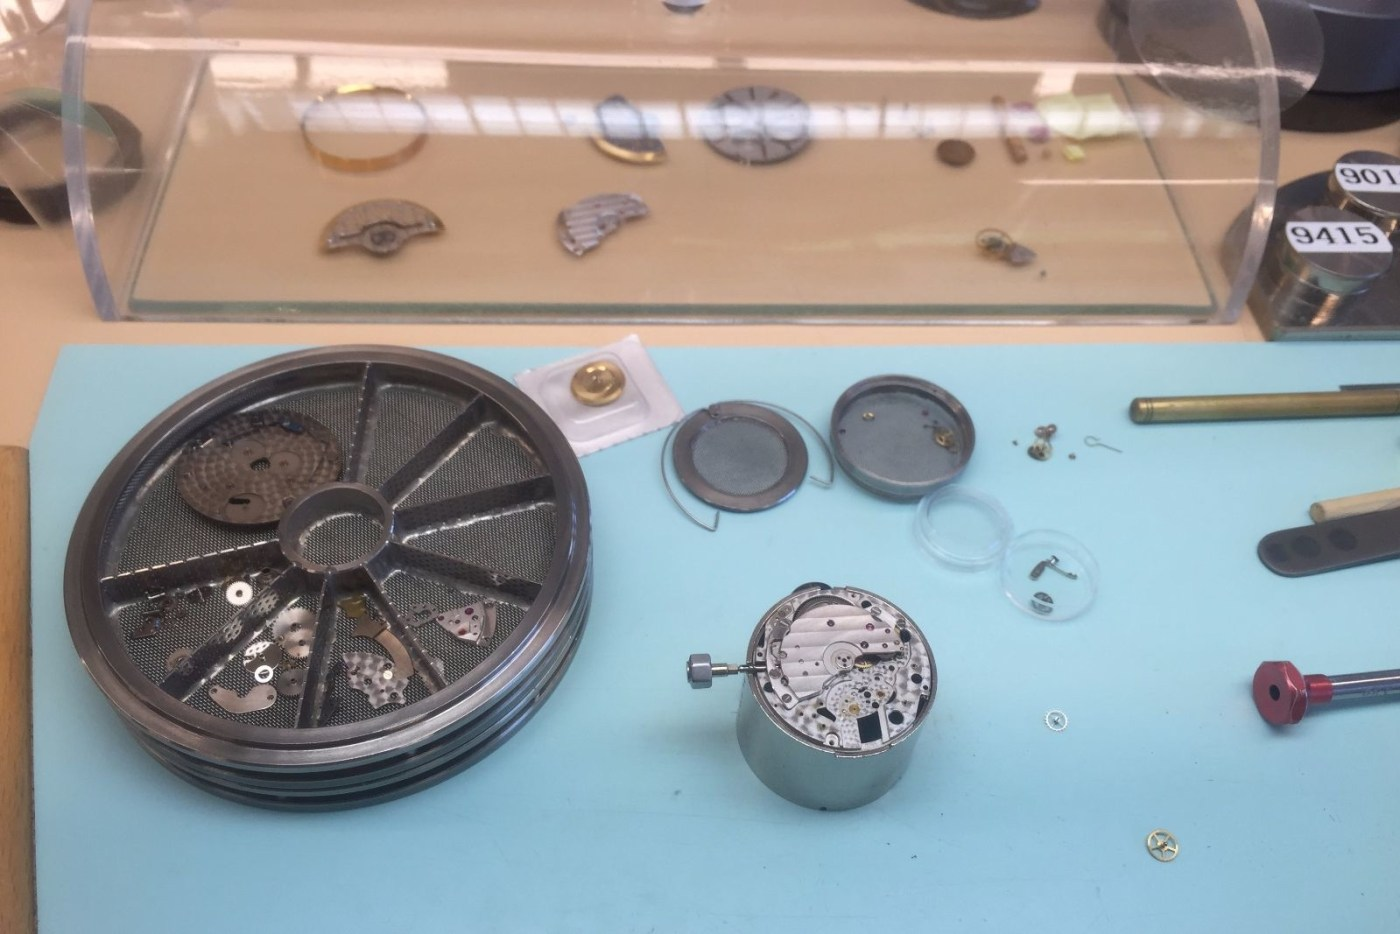 The movement is disassembled to the main plate and parts are put into a carriage for cleaning